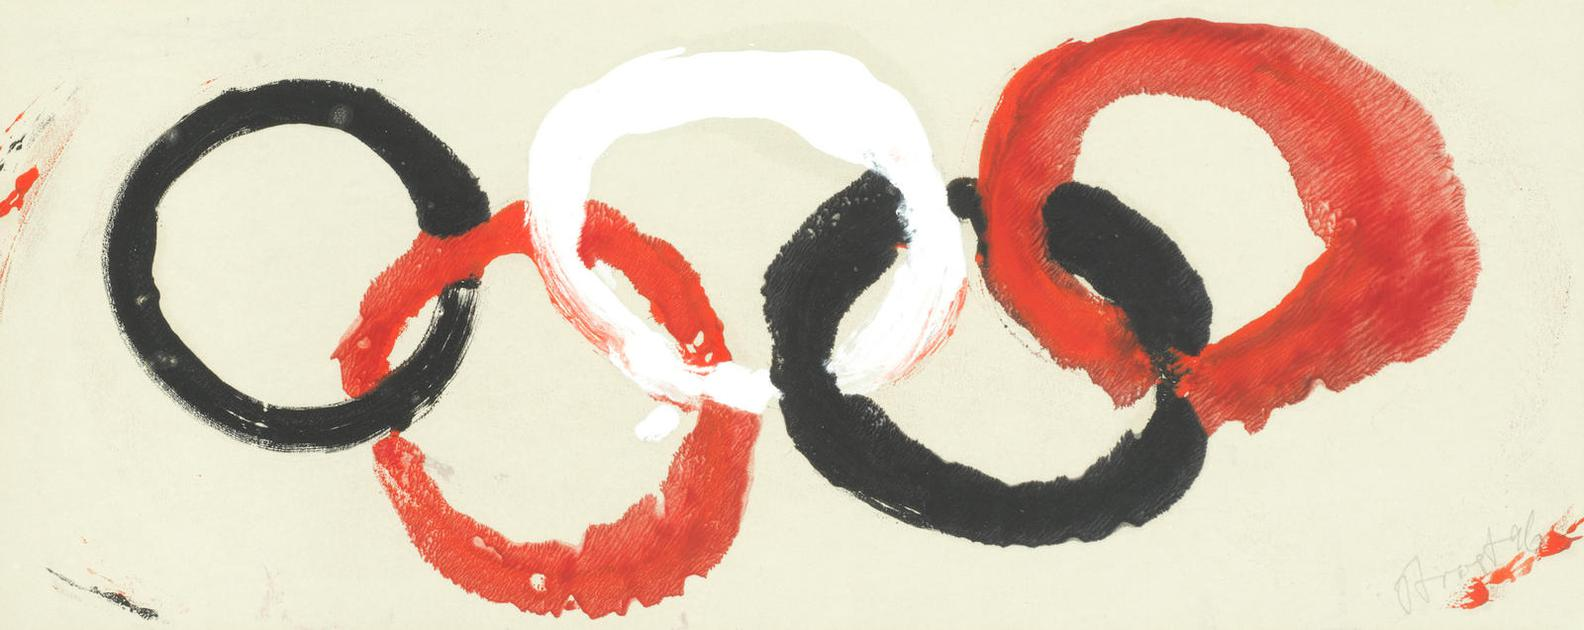 Terry Frost - Circles, Red, White And Black-1996